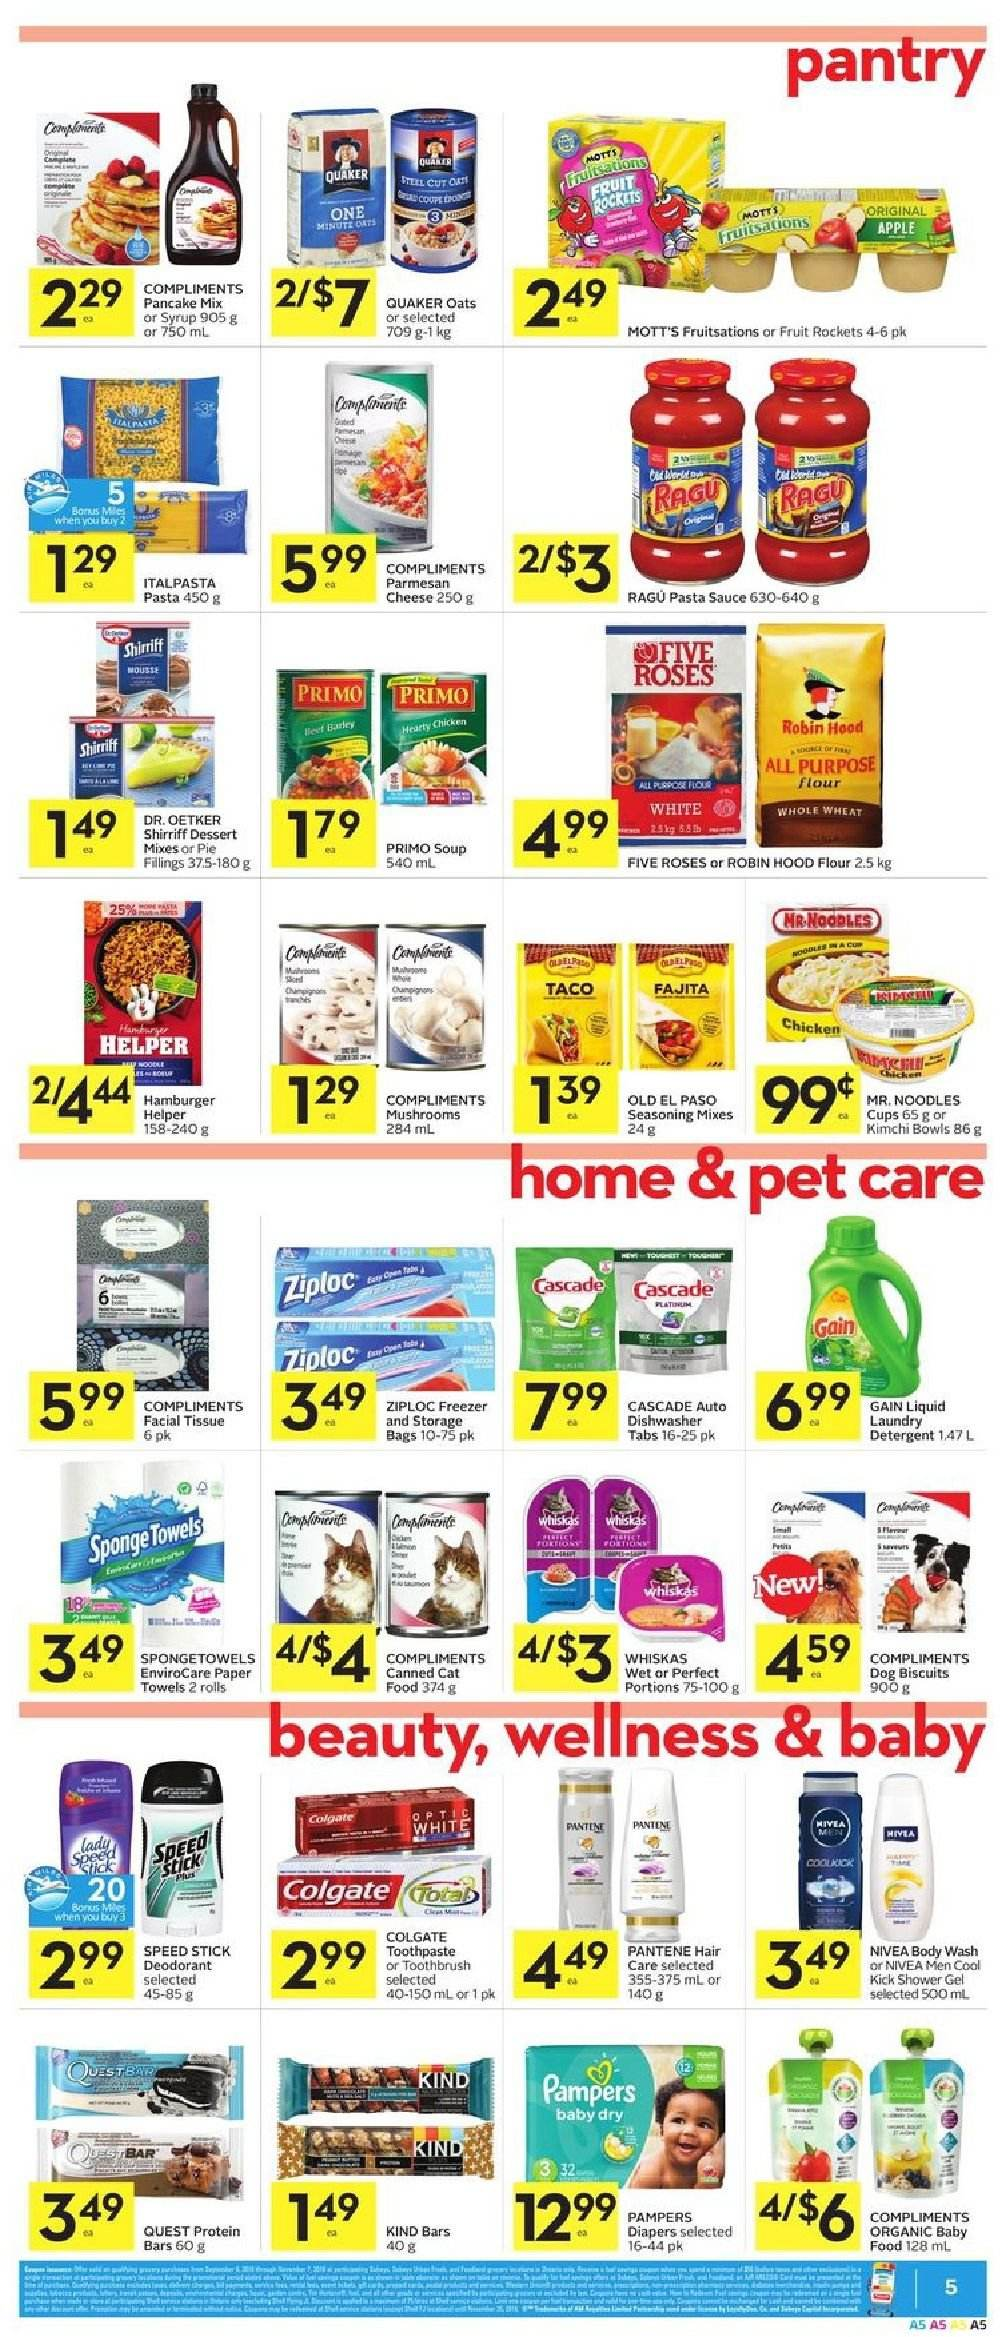 Foodland Flyer  - October 11, 2018 - October 17, 2018. Page 5.